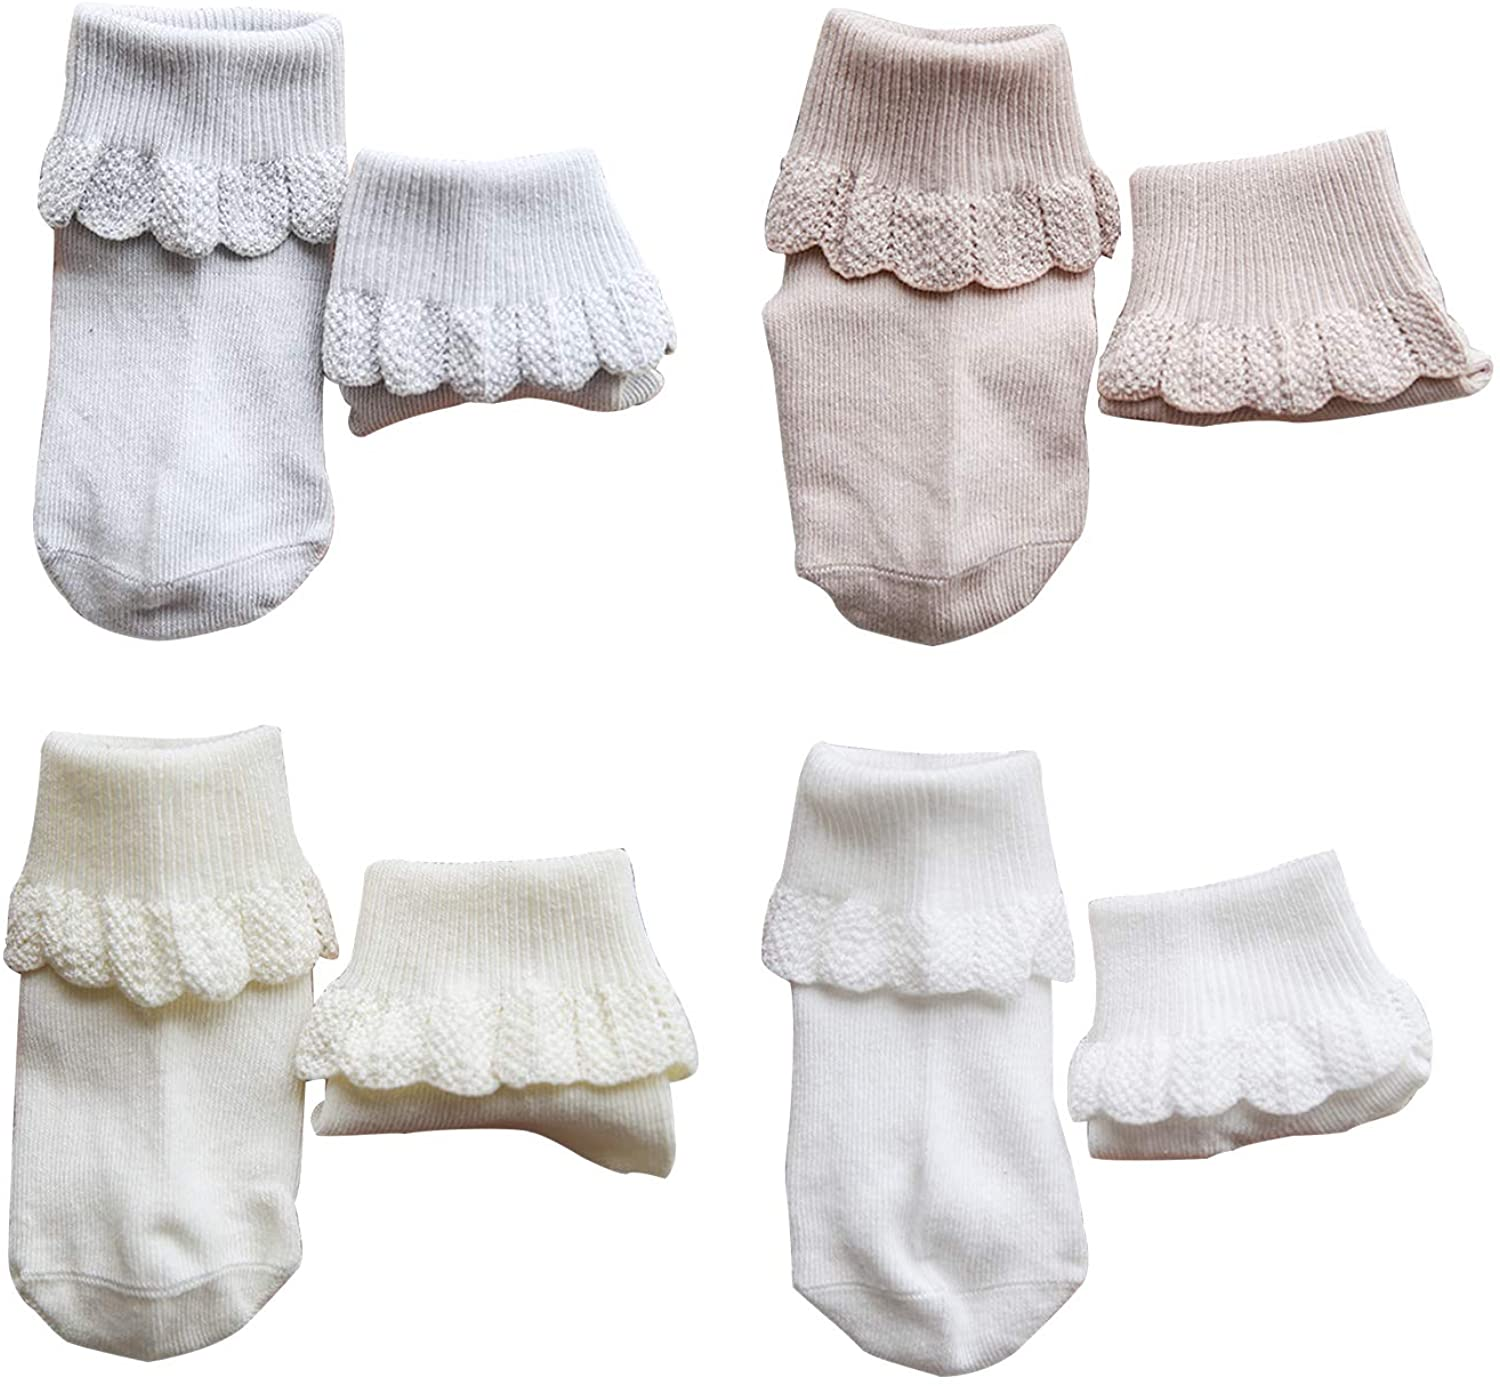 The Idealhome Baby Girls Lace 4 Pair Toddler Cotton Socks Non-slip Warm Knee High Socks (0-3 years)